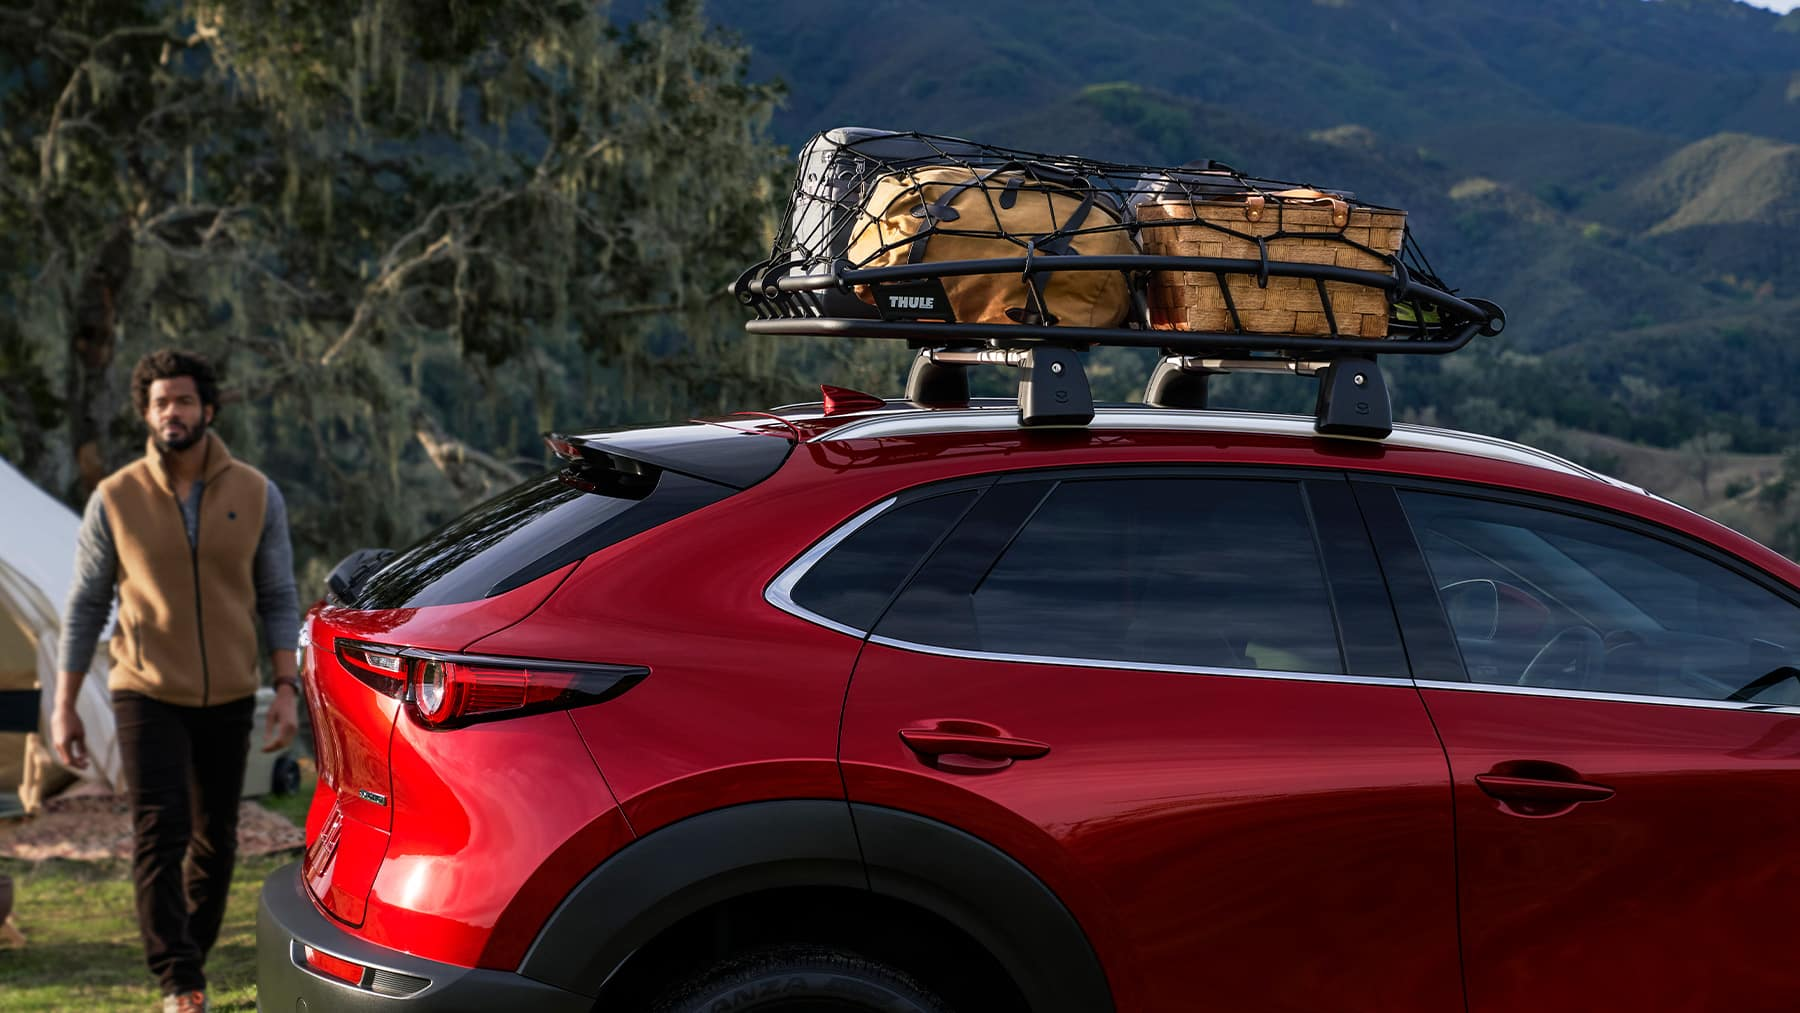 2020 Mazda CX-30 with roof cargo basket